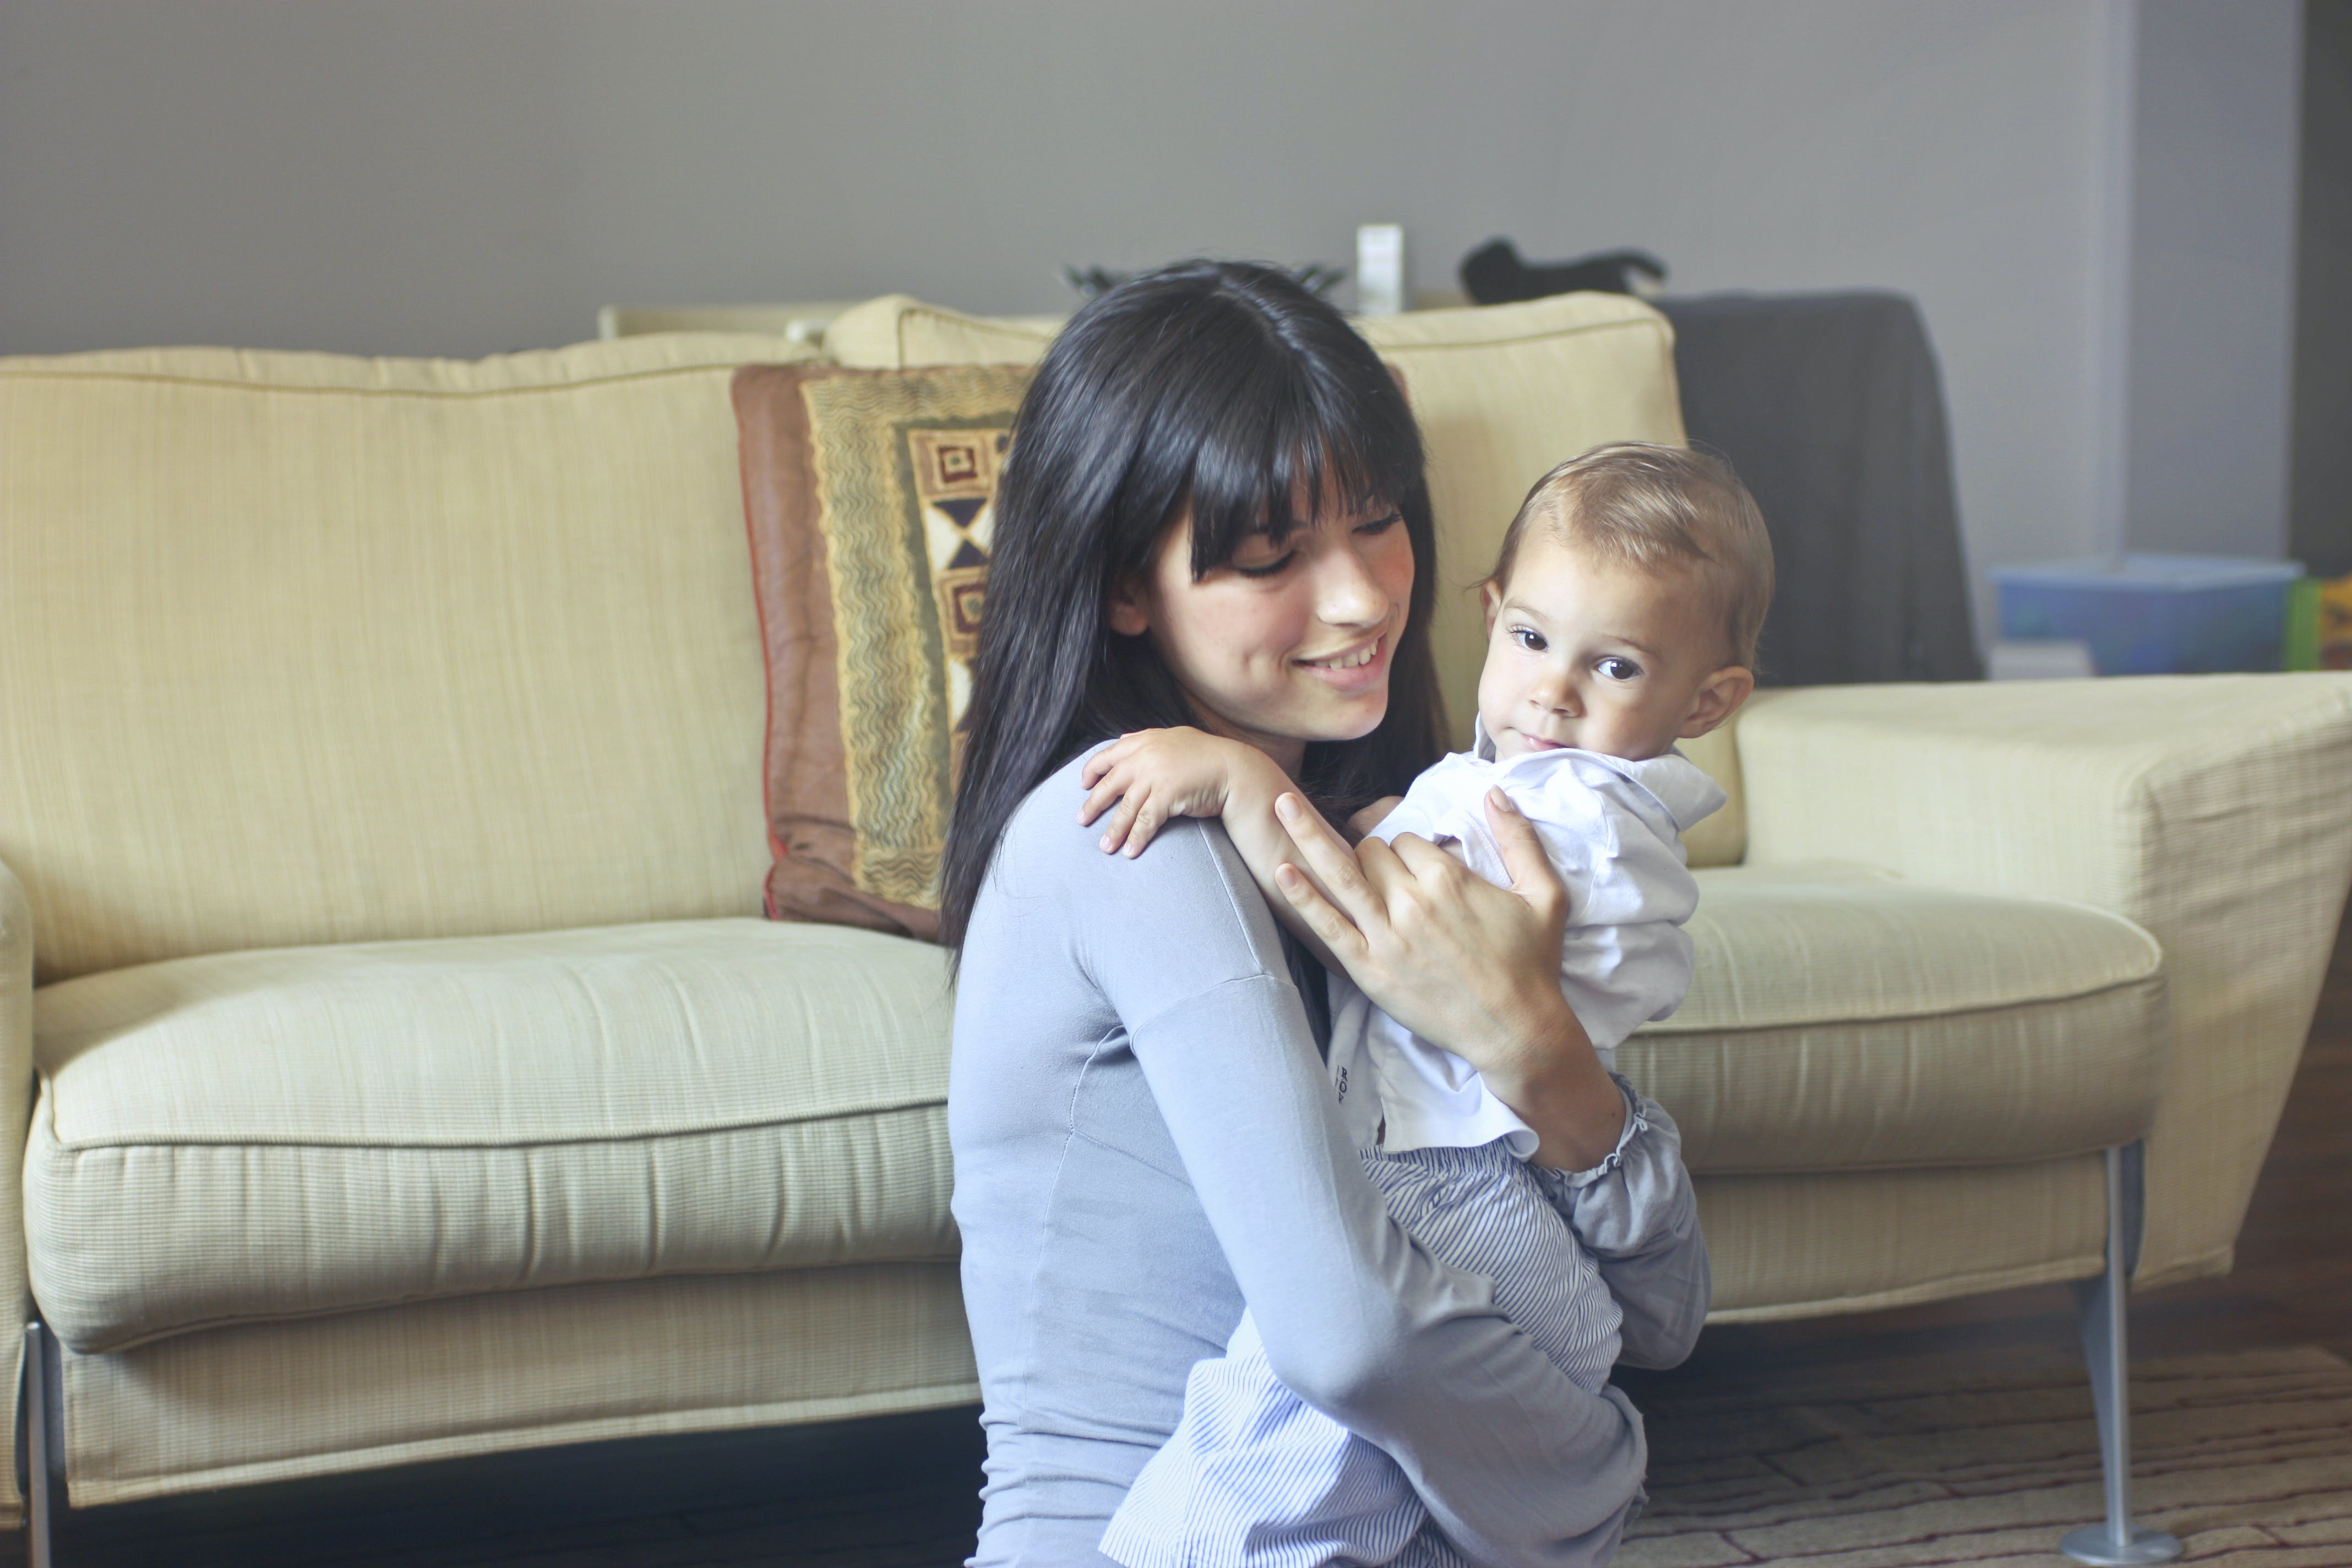 Woman in Gray Sweater Carrying Toddler in White Button-up Shirt